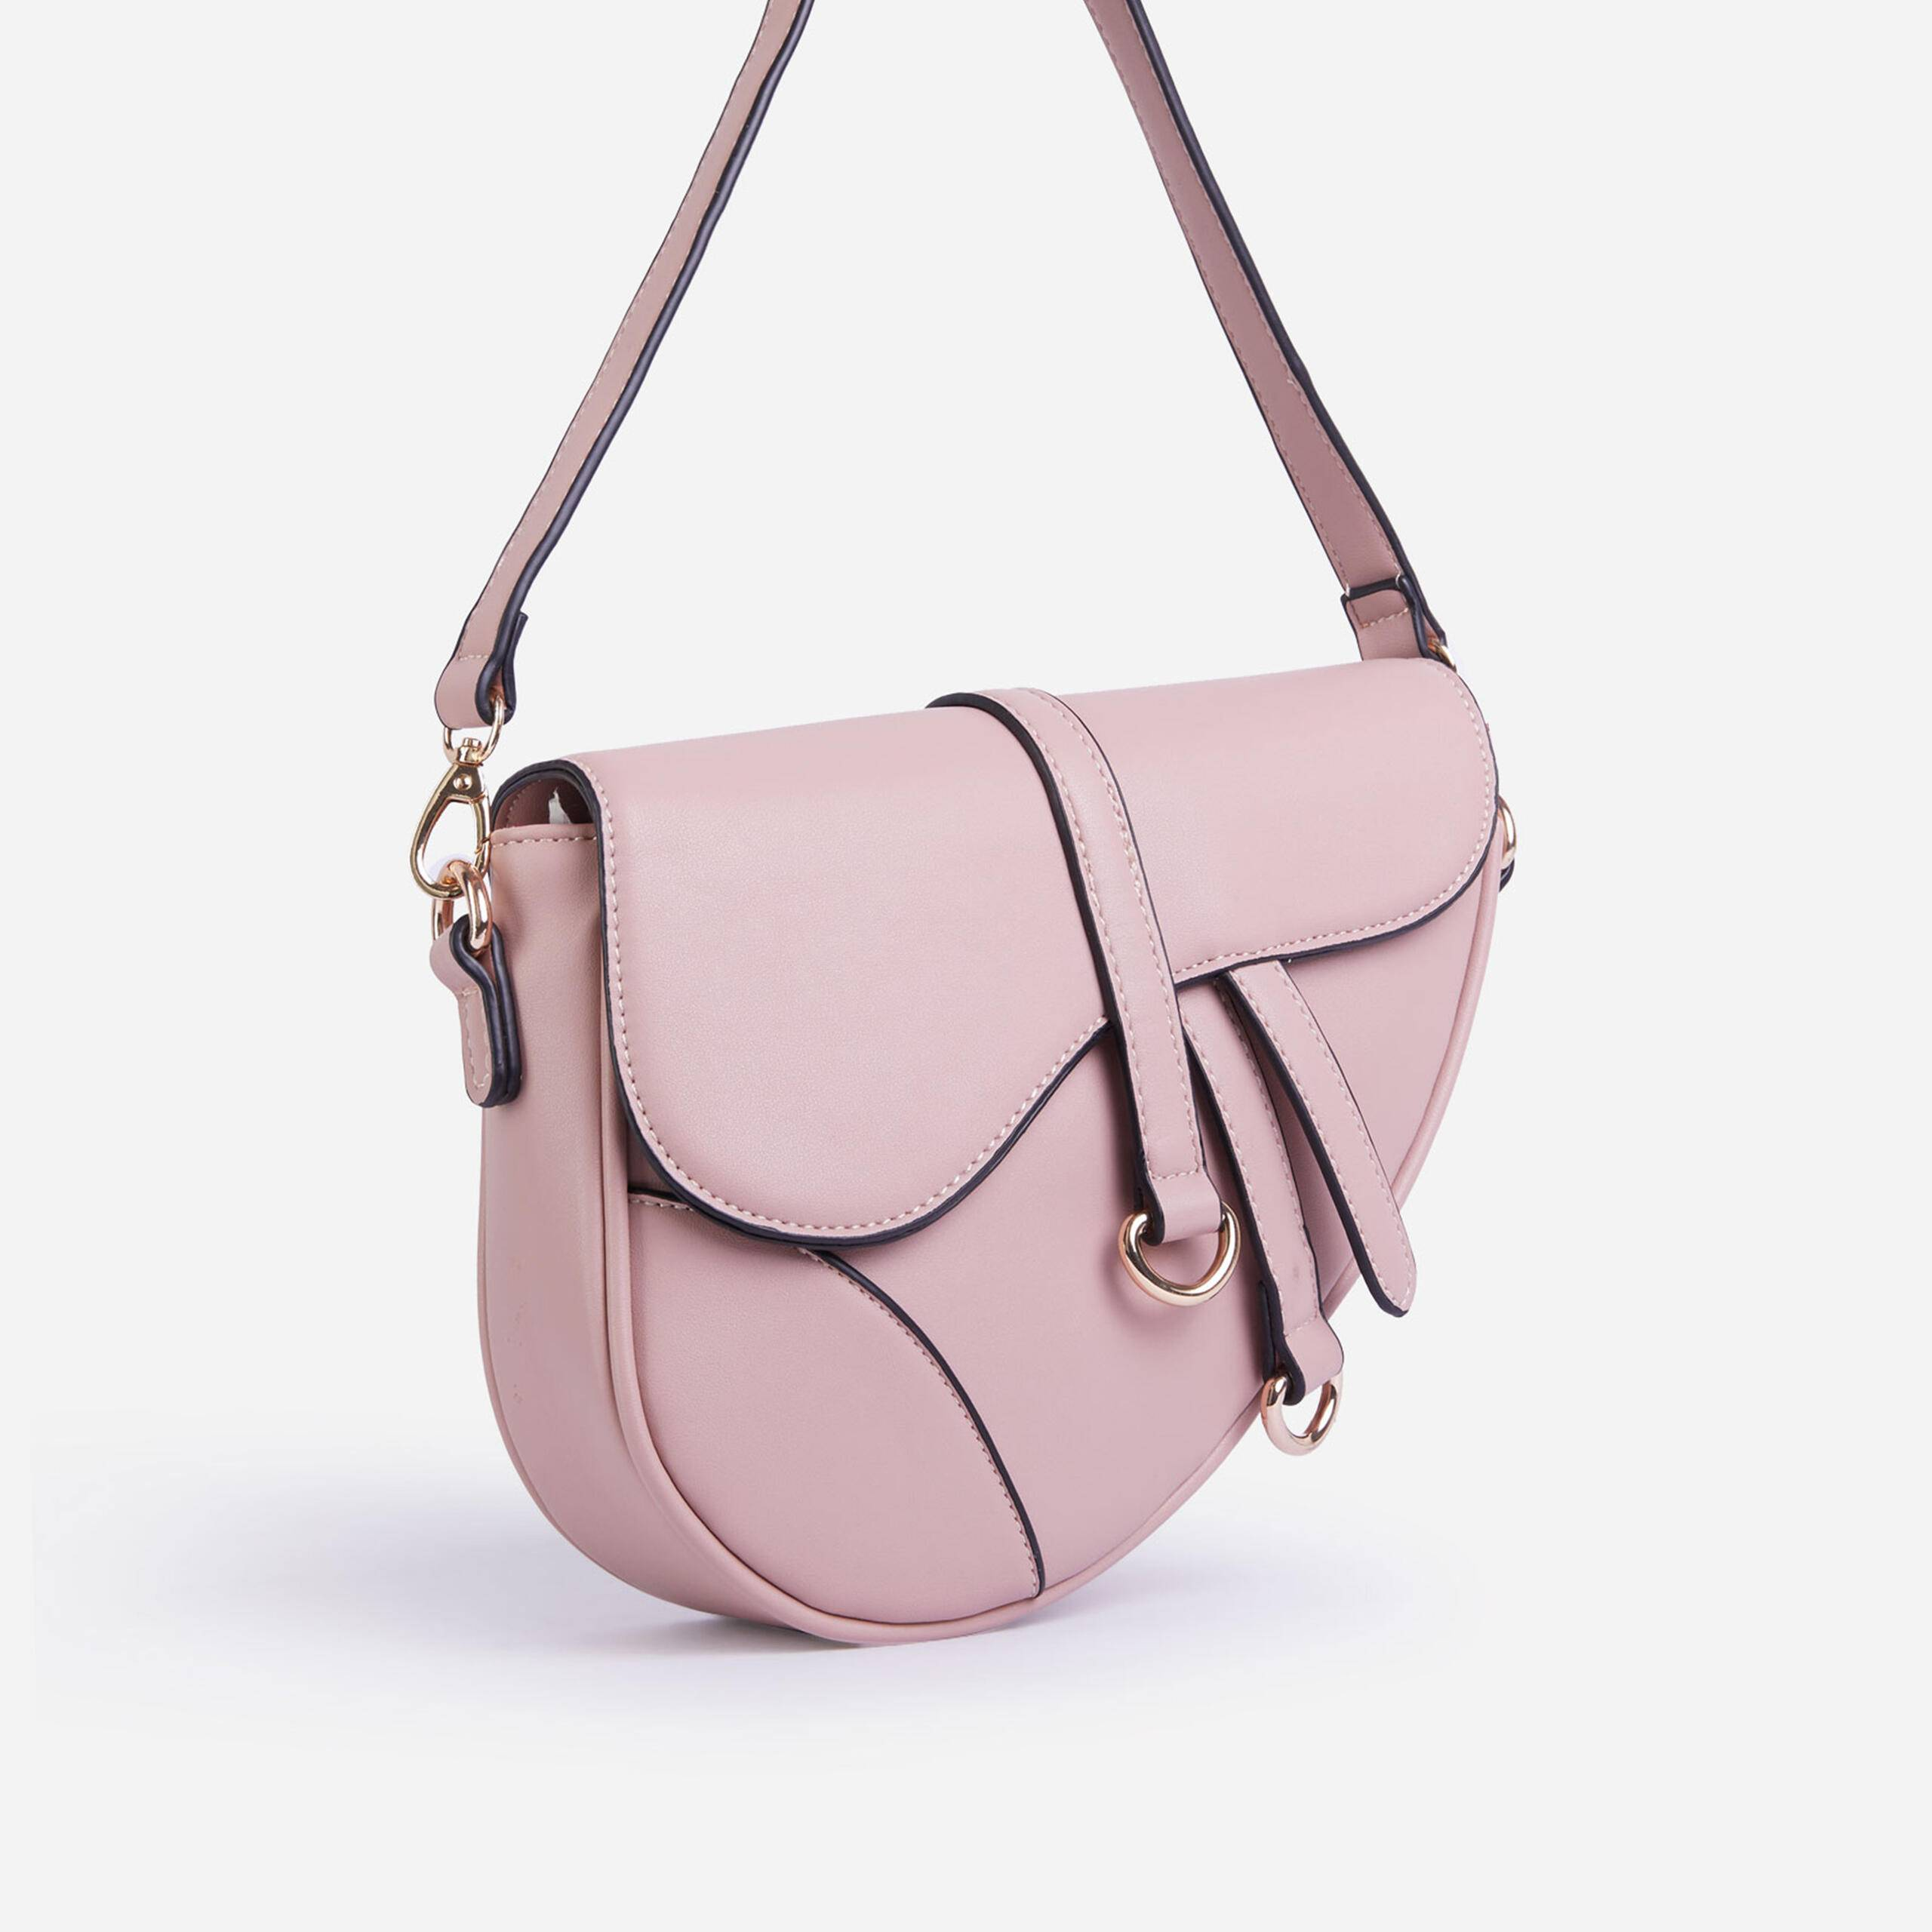 EGO Issy Curved Cross Body Saddle Bag In Pink Faux Leather,, Pink  - female - Size: One Size